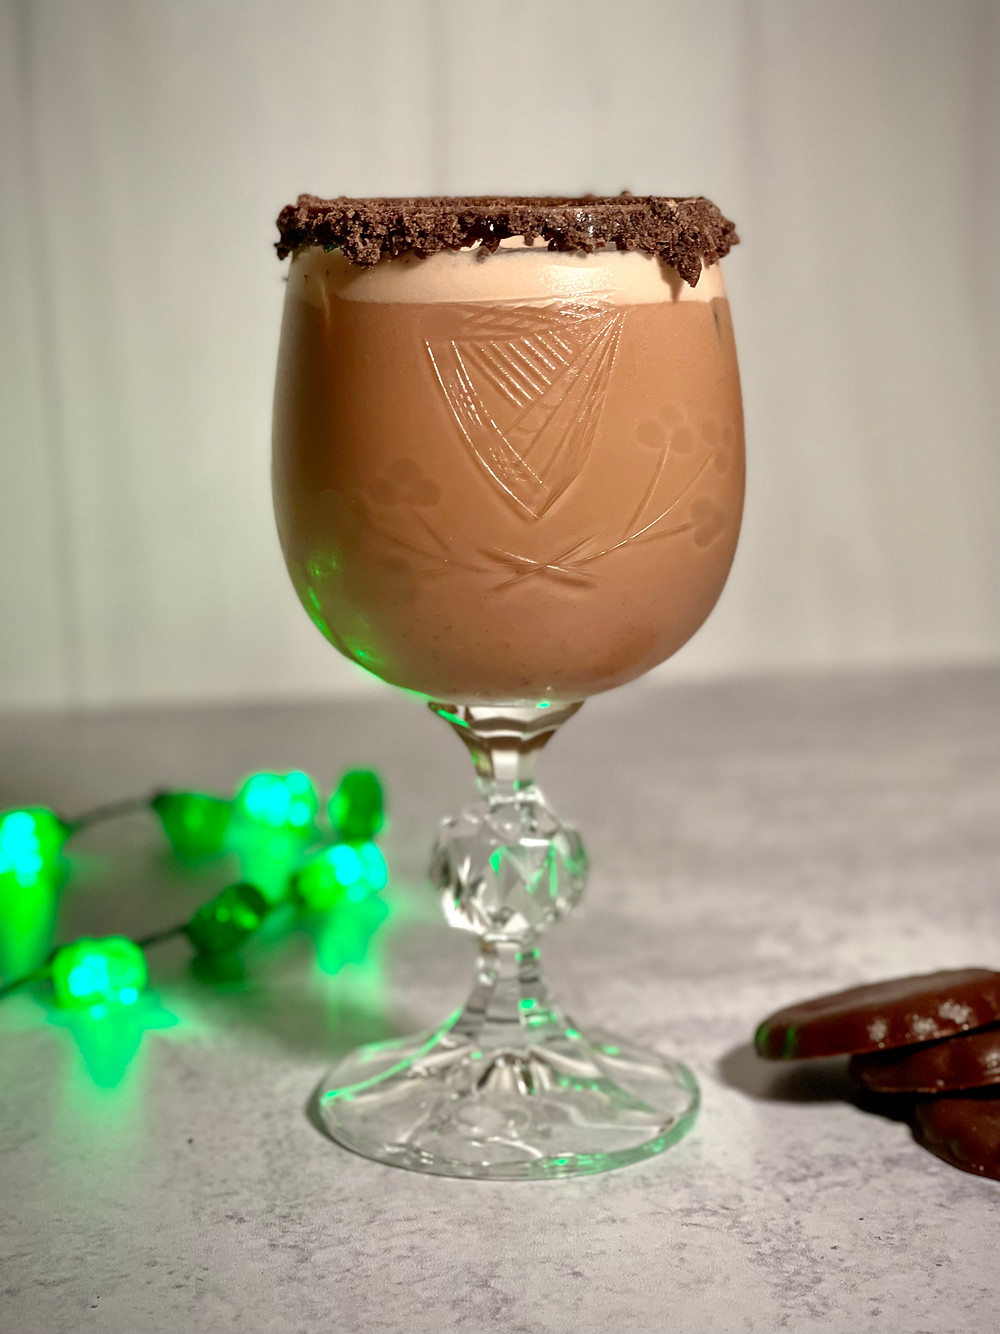 Girl Scout Cookie themed cocktail featuring vodka, thin mint cookies, cream, mint syrup and chocolate sauce. Shaken and served over ice with a thin mint cookie rim.